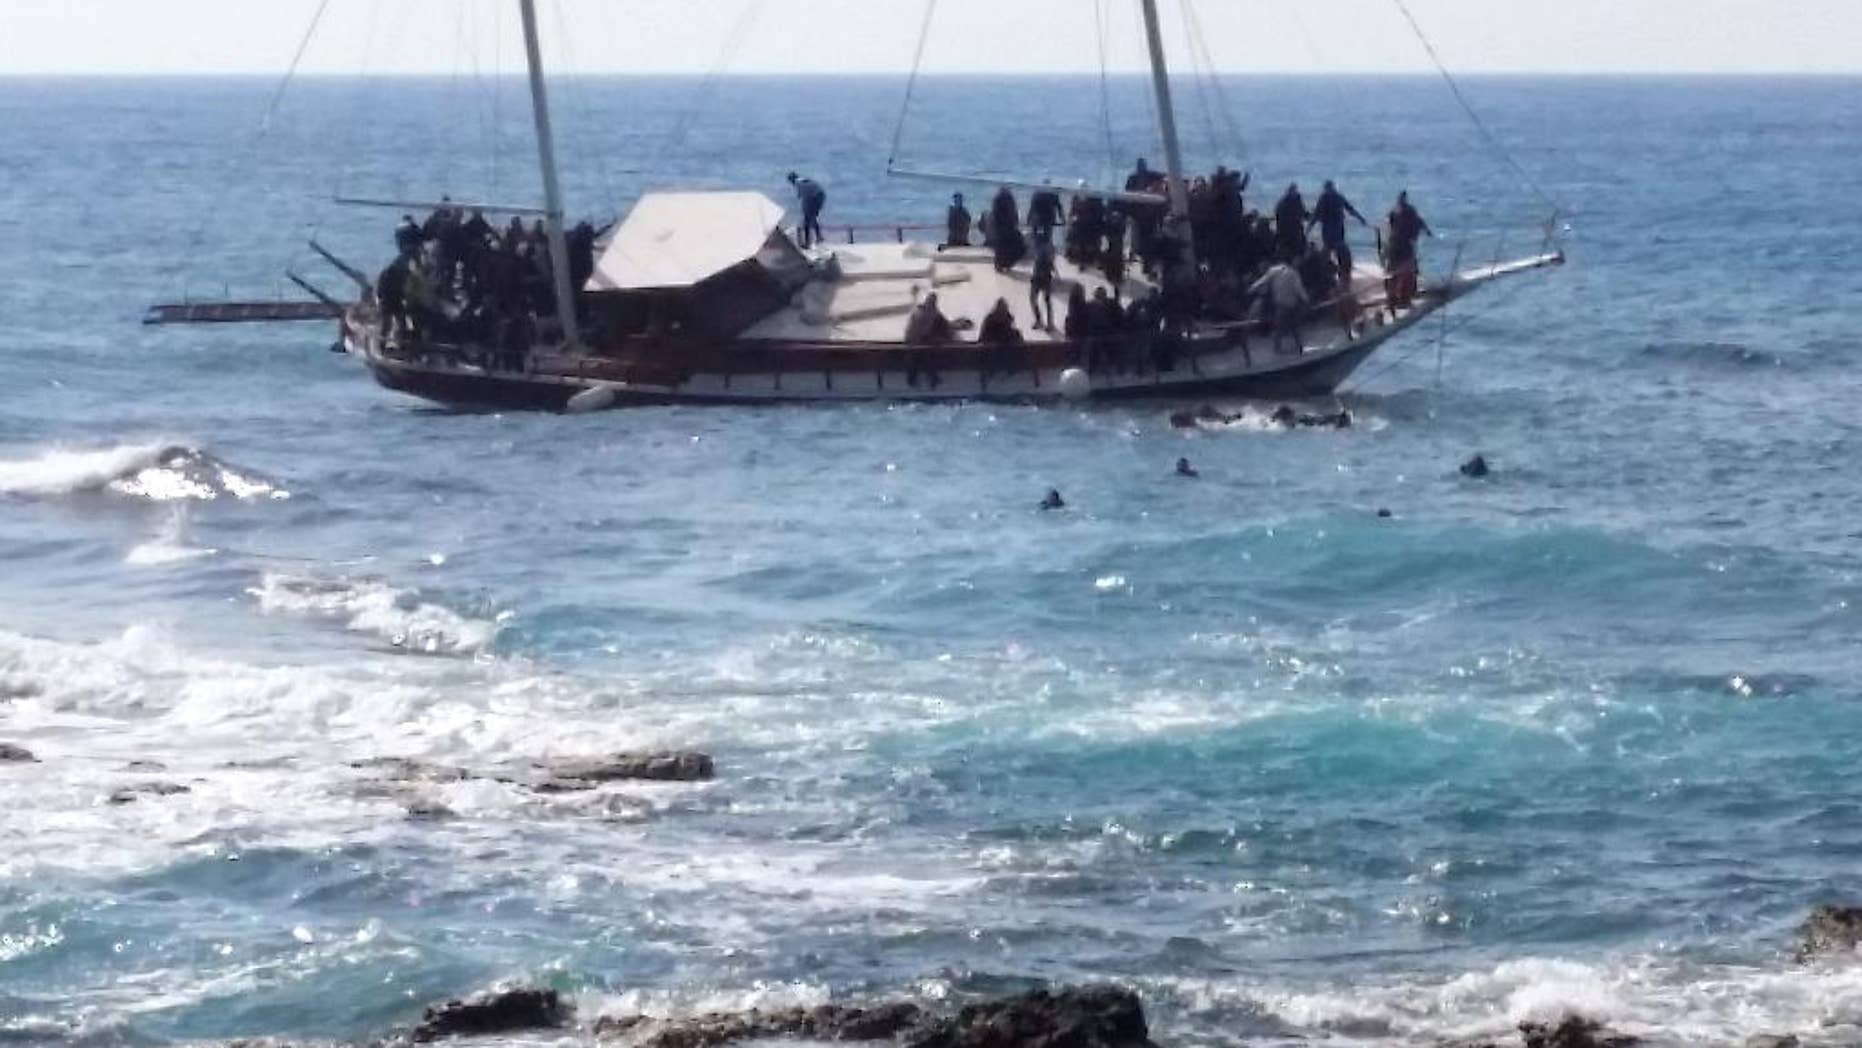 Migrants swim to reach the shore as others remainare on a listing vessel that later sunk in the eastern Aegean island of Rhodes, Greece on Monday, April 20, 2015. Greek authorities said that at least three people have died, including a child, after a wooden boat carrying tens of migrants ran aground off the  island of Rhodes. (AP Photo/Michalis Loizos) GREECE OUT